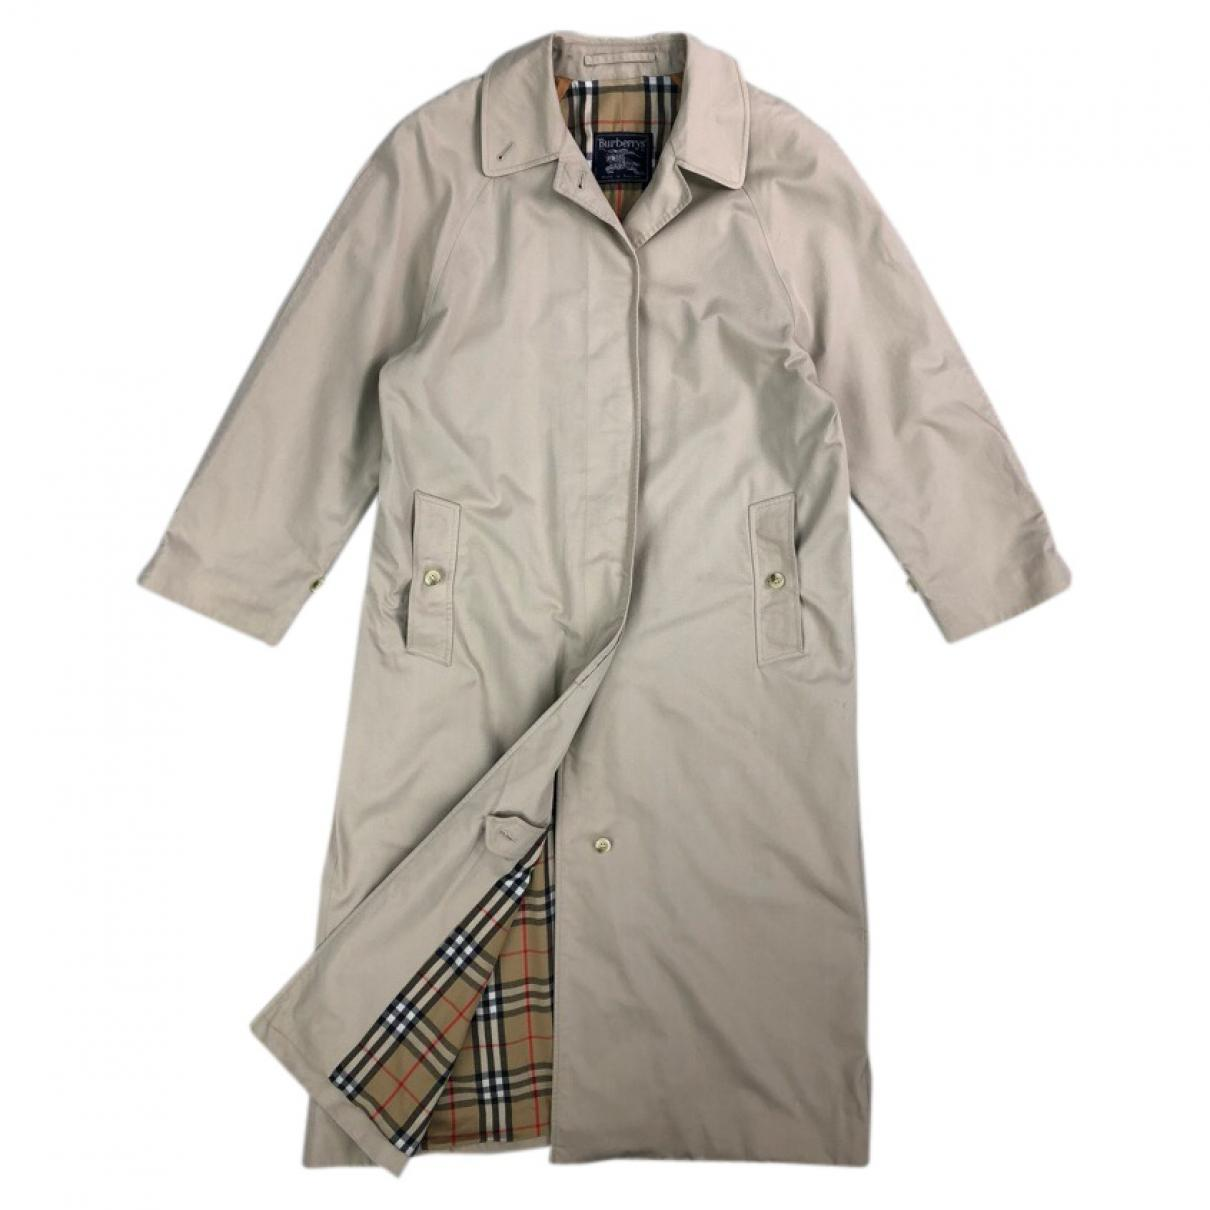 a969c33b7c7f Lyst - Burberry Pre-owned Vintage Beige Cotton Coats in Natural